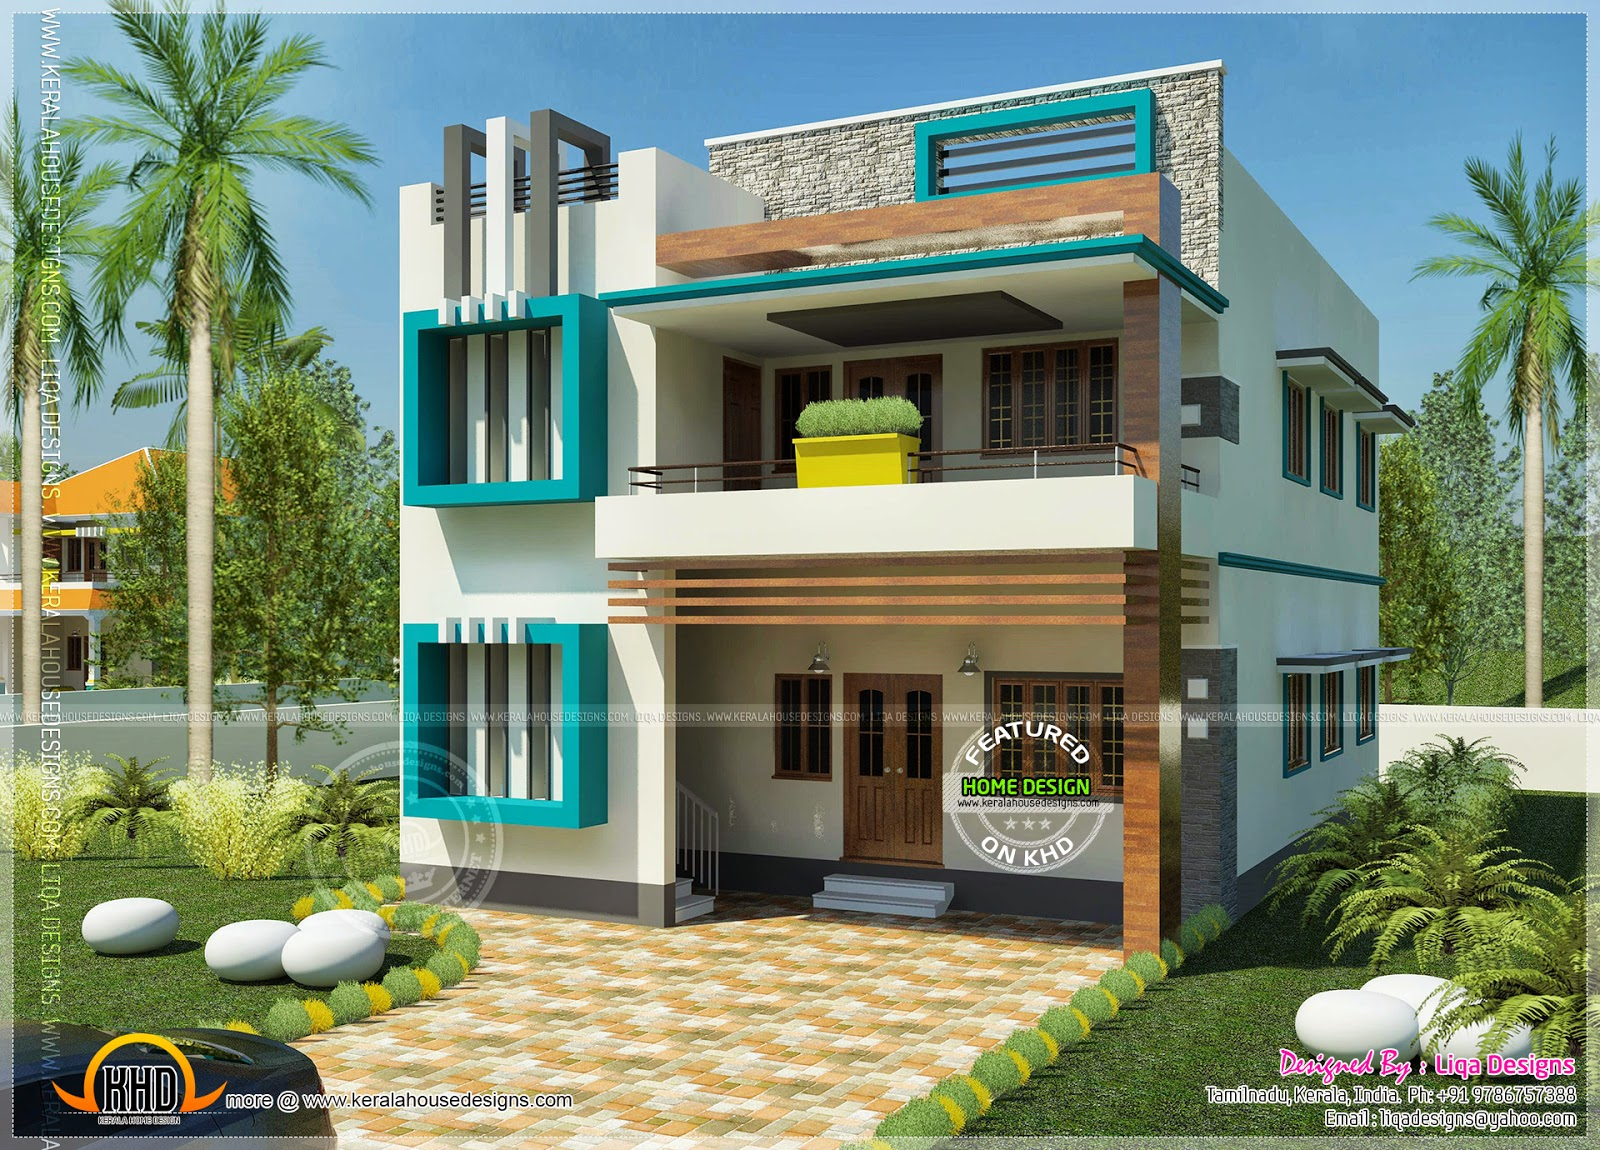 South Indian Contemporary Home Kerala Home Design And: best small house designs in india